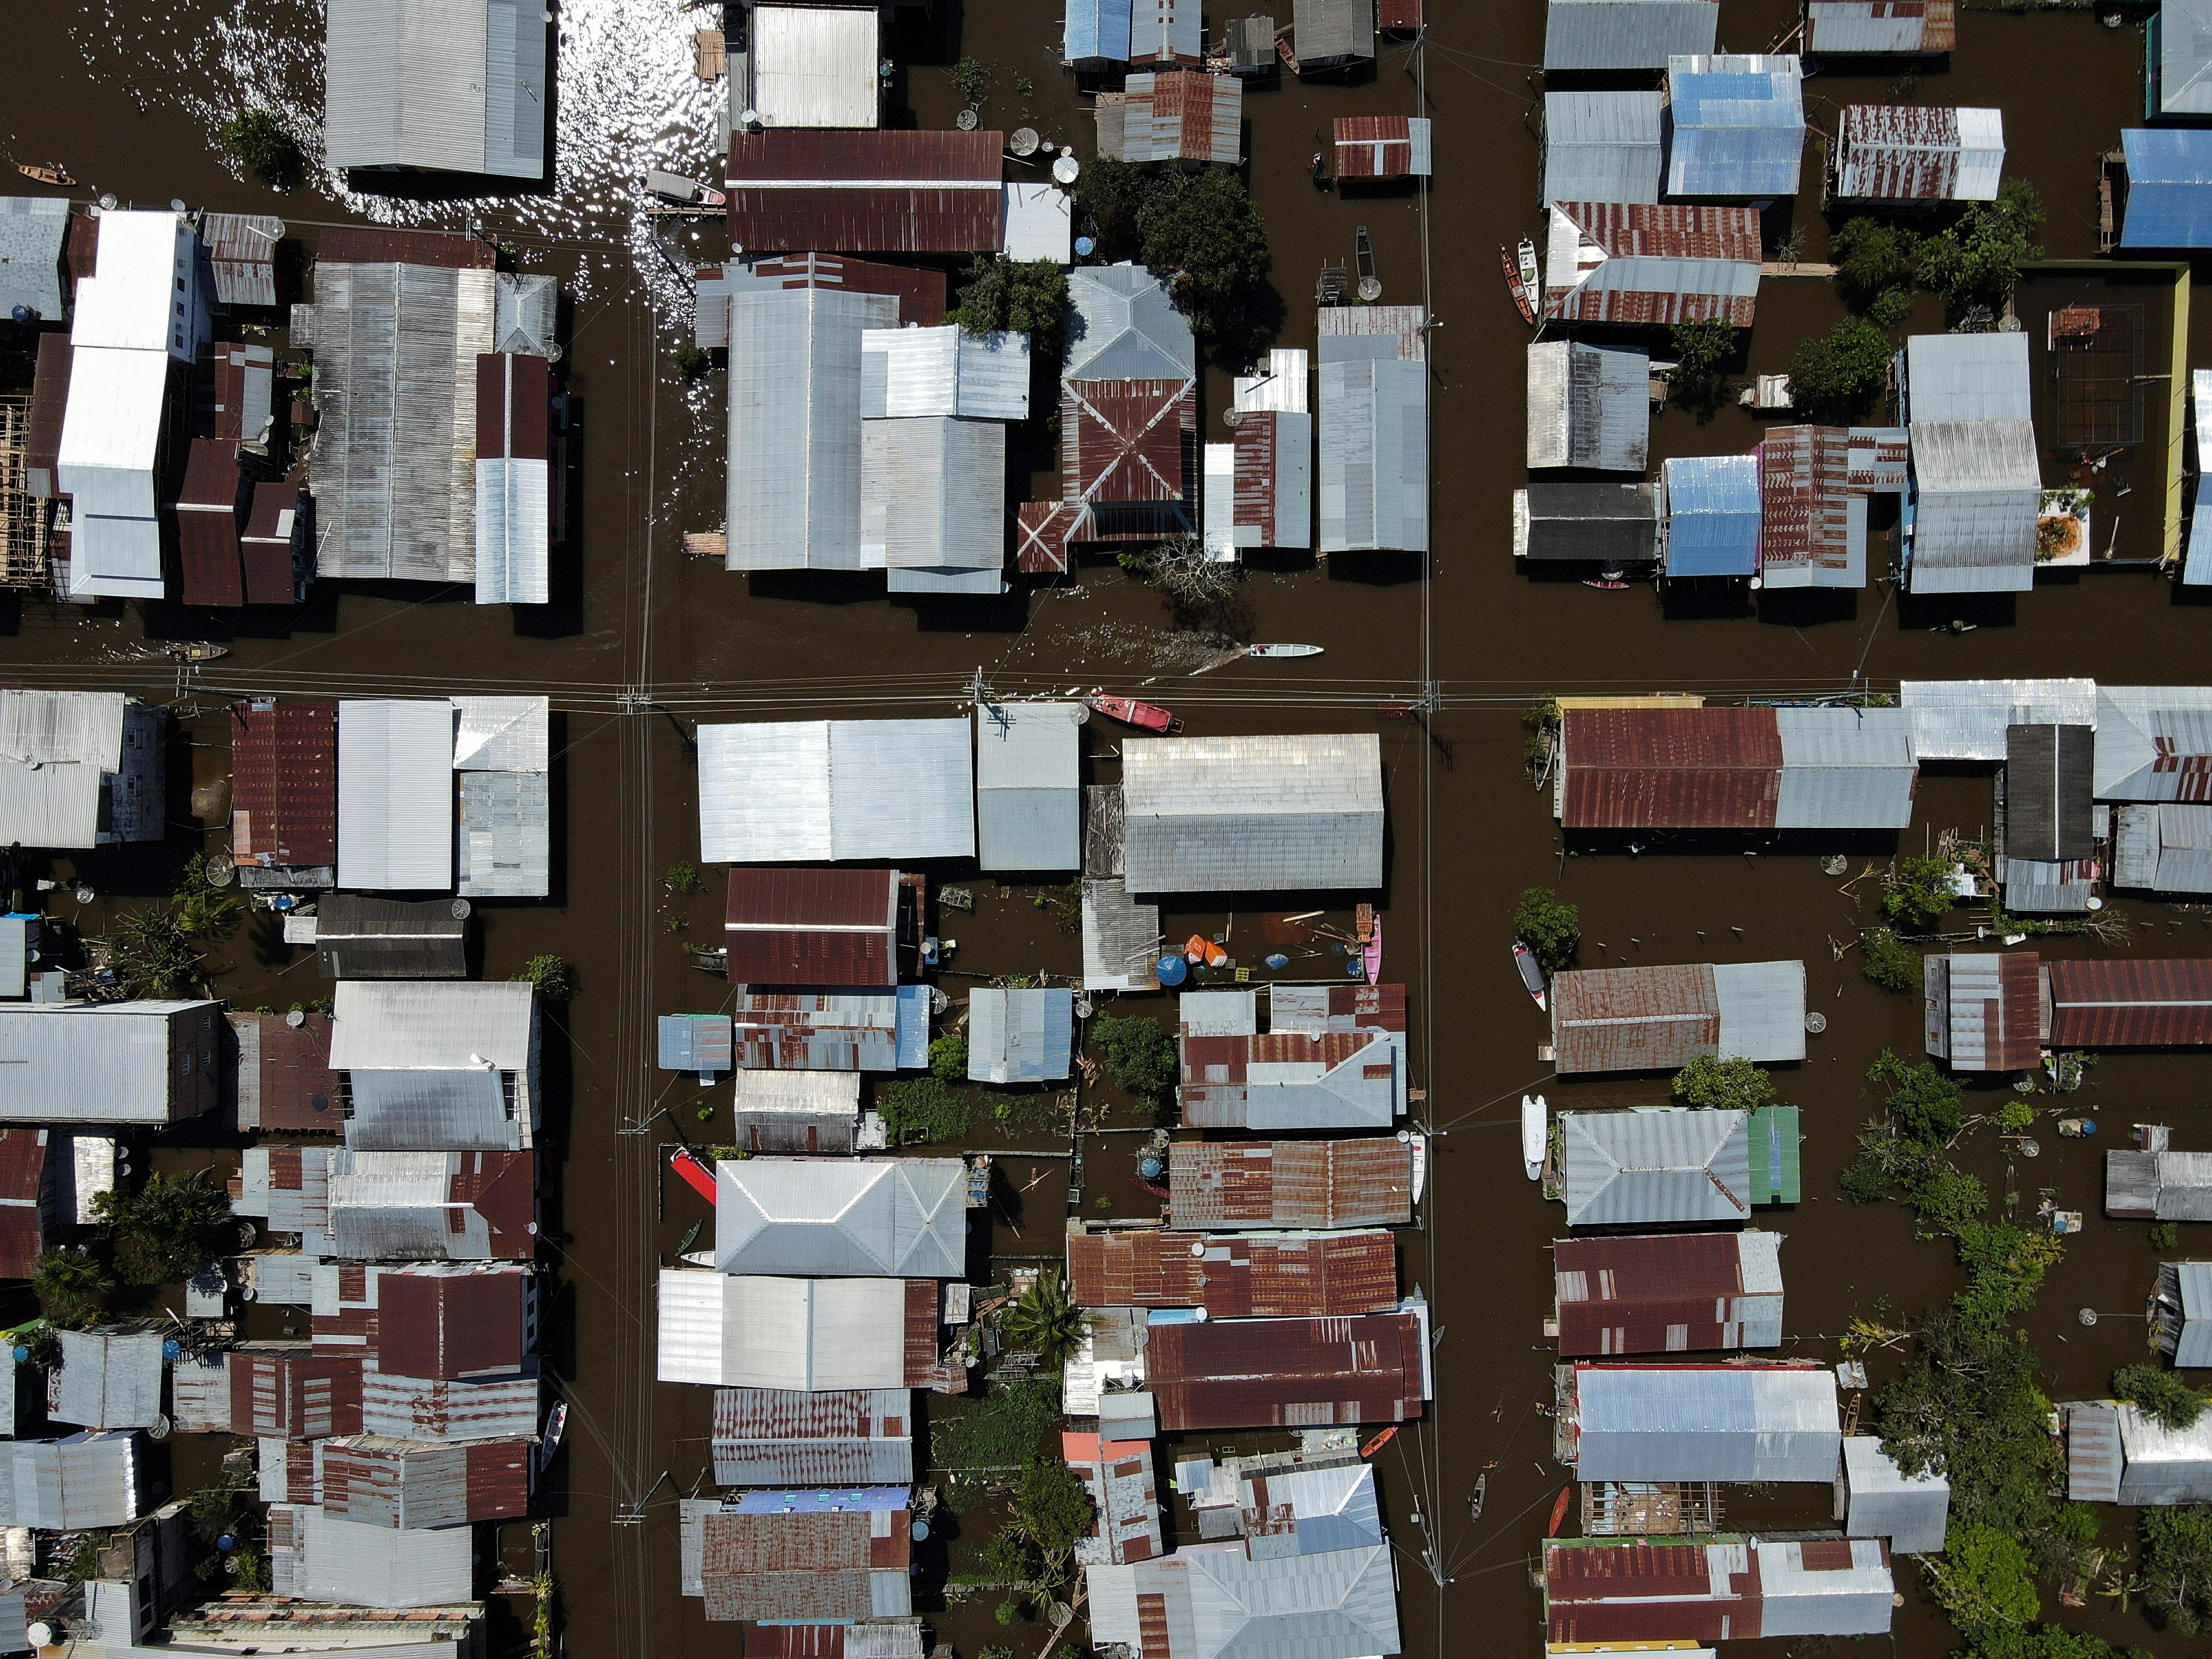 An aerial view of the town of Anama, flooded by water from the Solimoes river in Amazonas State, Brazil May 14, 2021. Picture taken May 14, 2021. Picture taken with a drone. REUTERS/Bruno Kelly